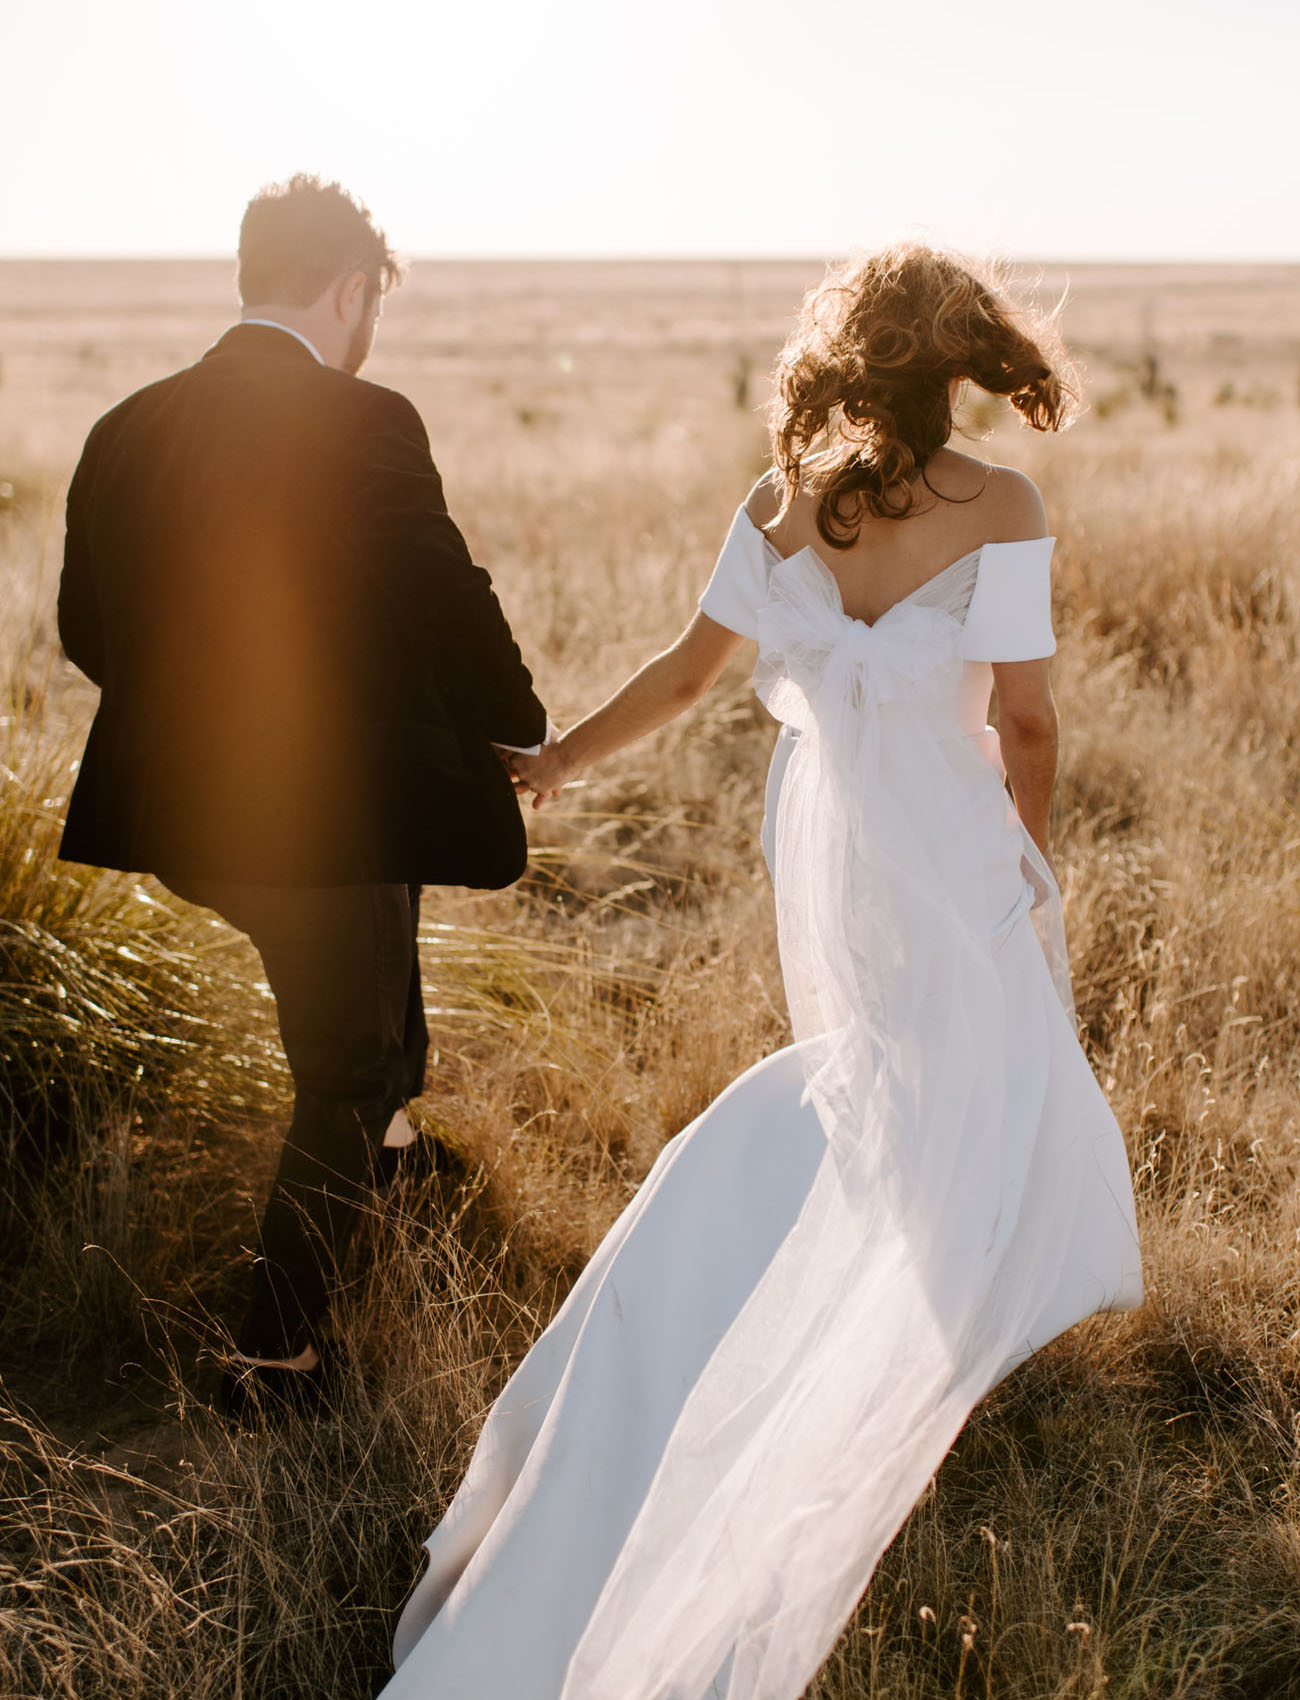 The couple went for a walk and portraits in the desert, look at the gorgeous wedding dress